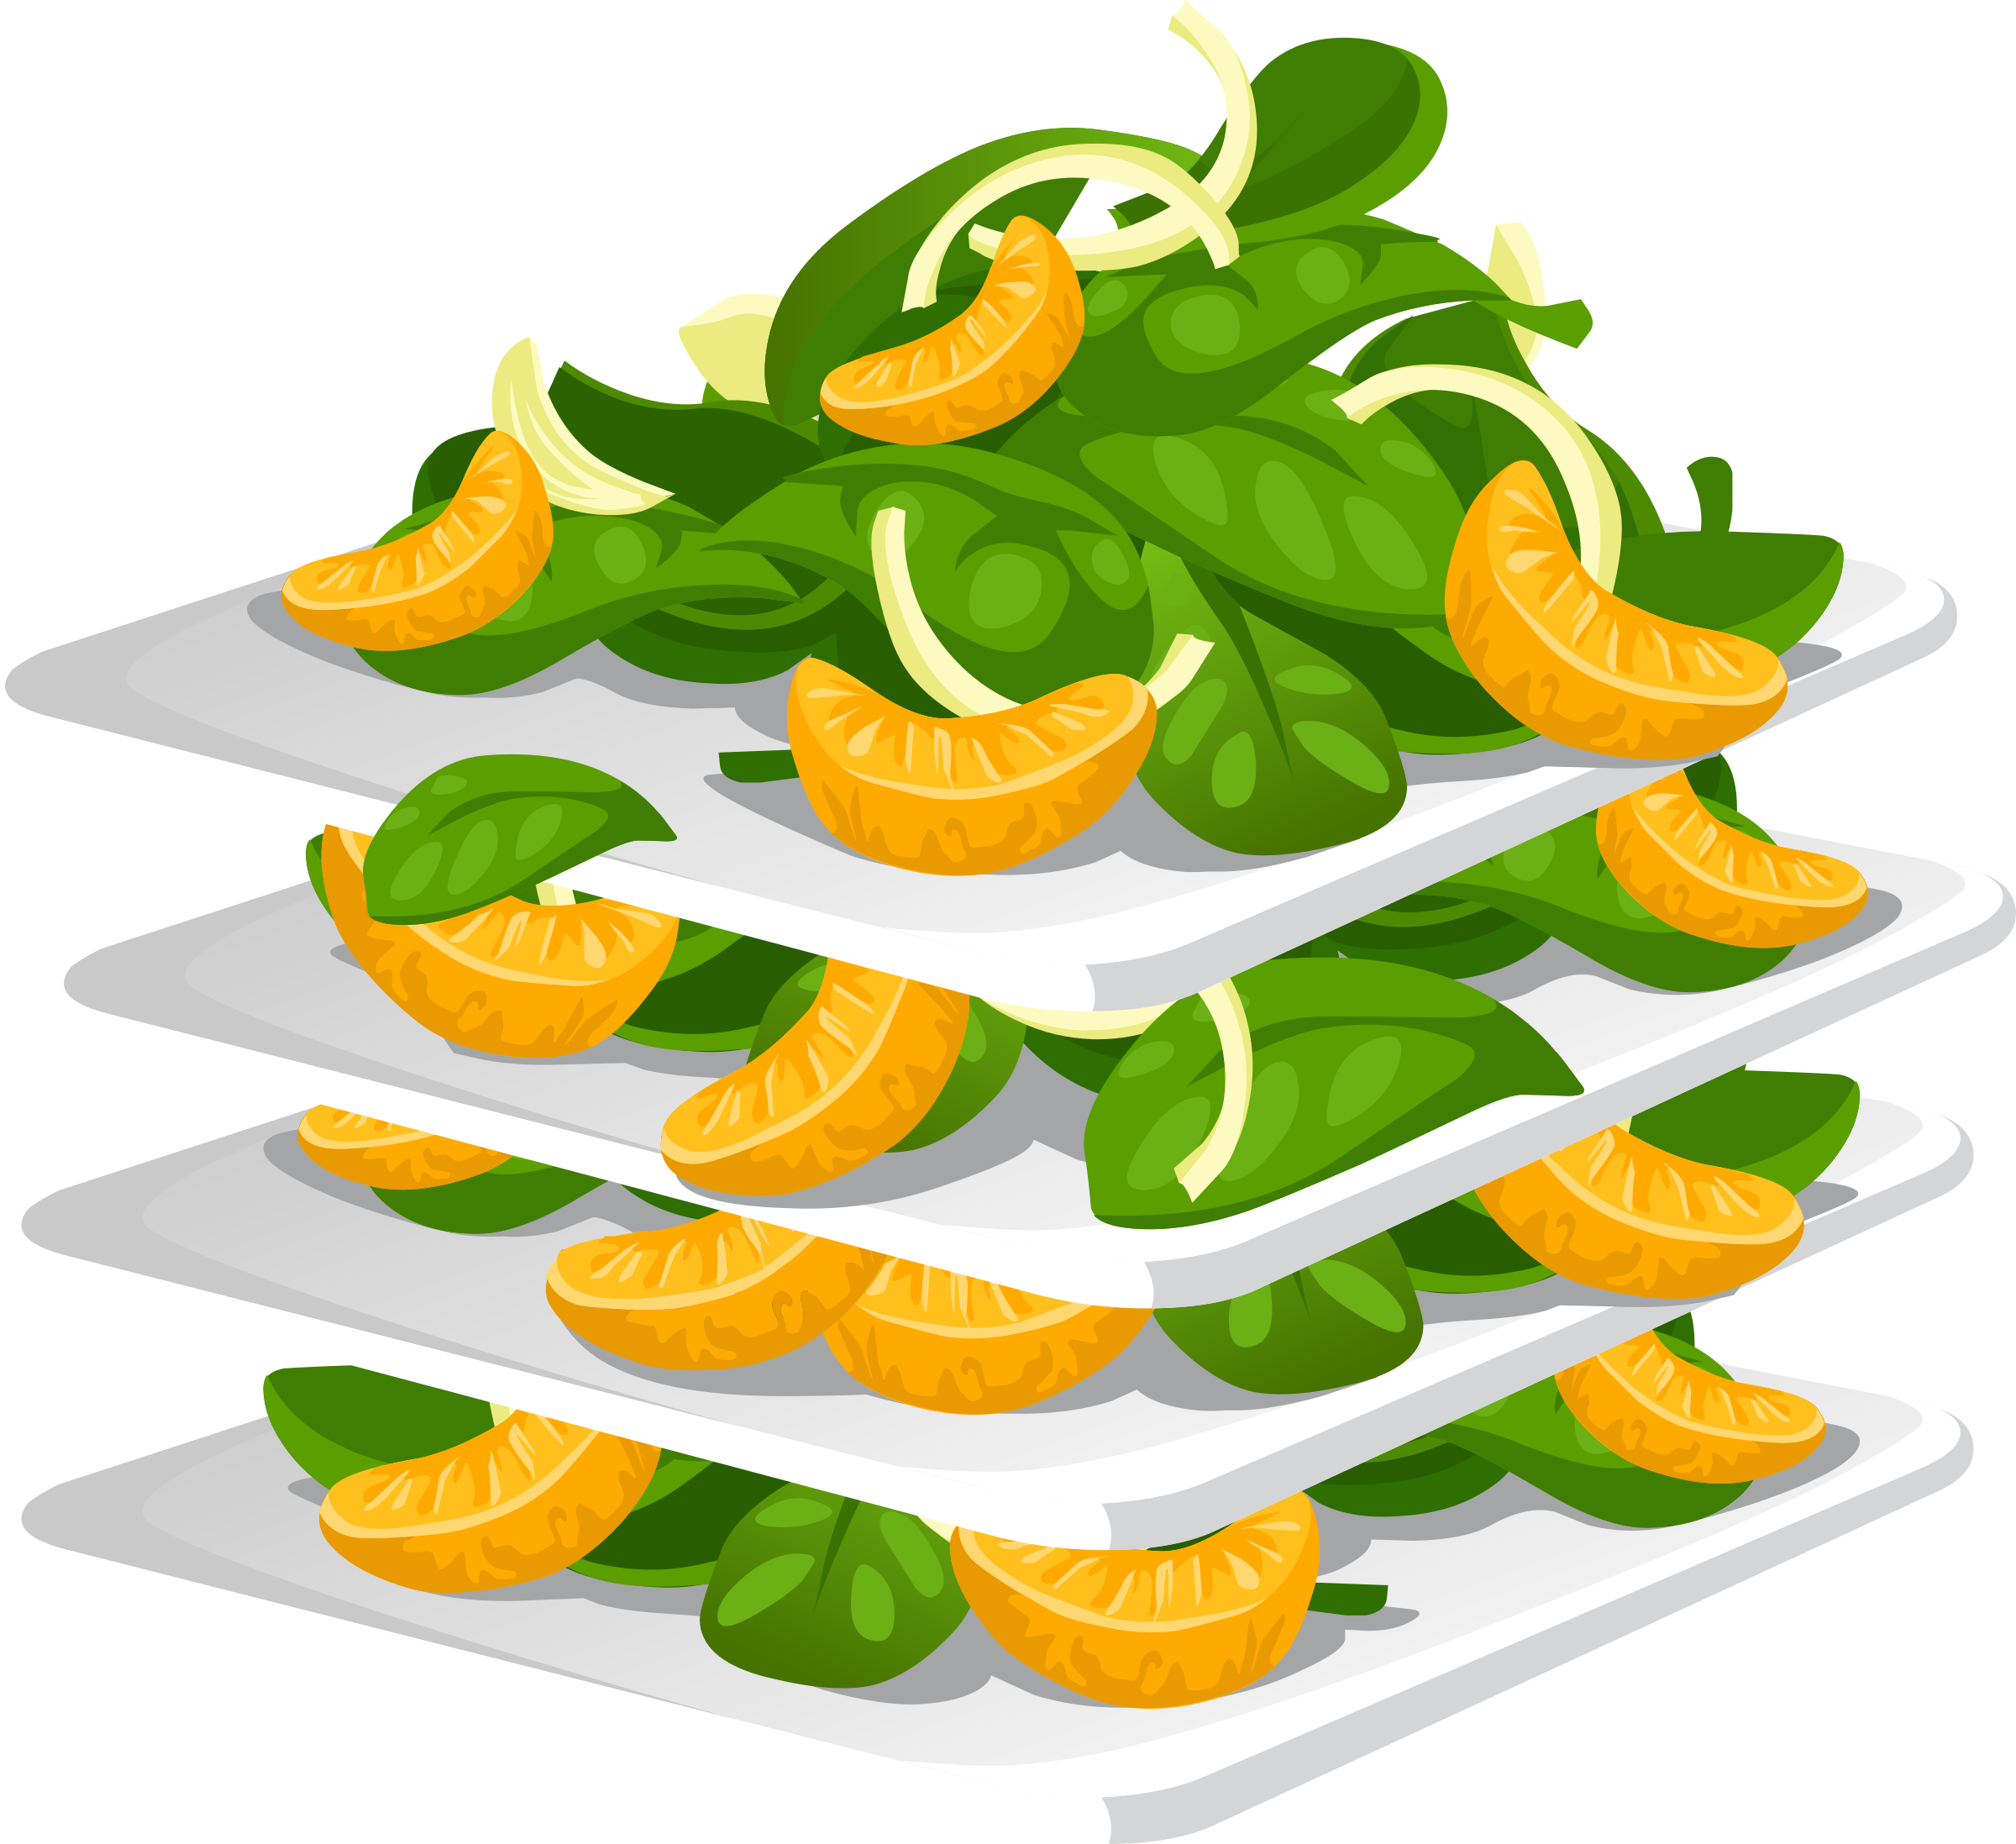 Pizza clipart salad. Food spinach icons png